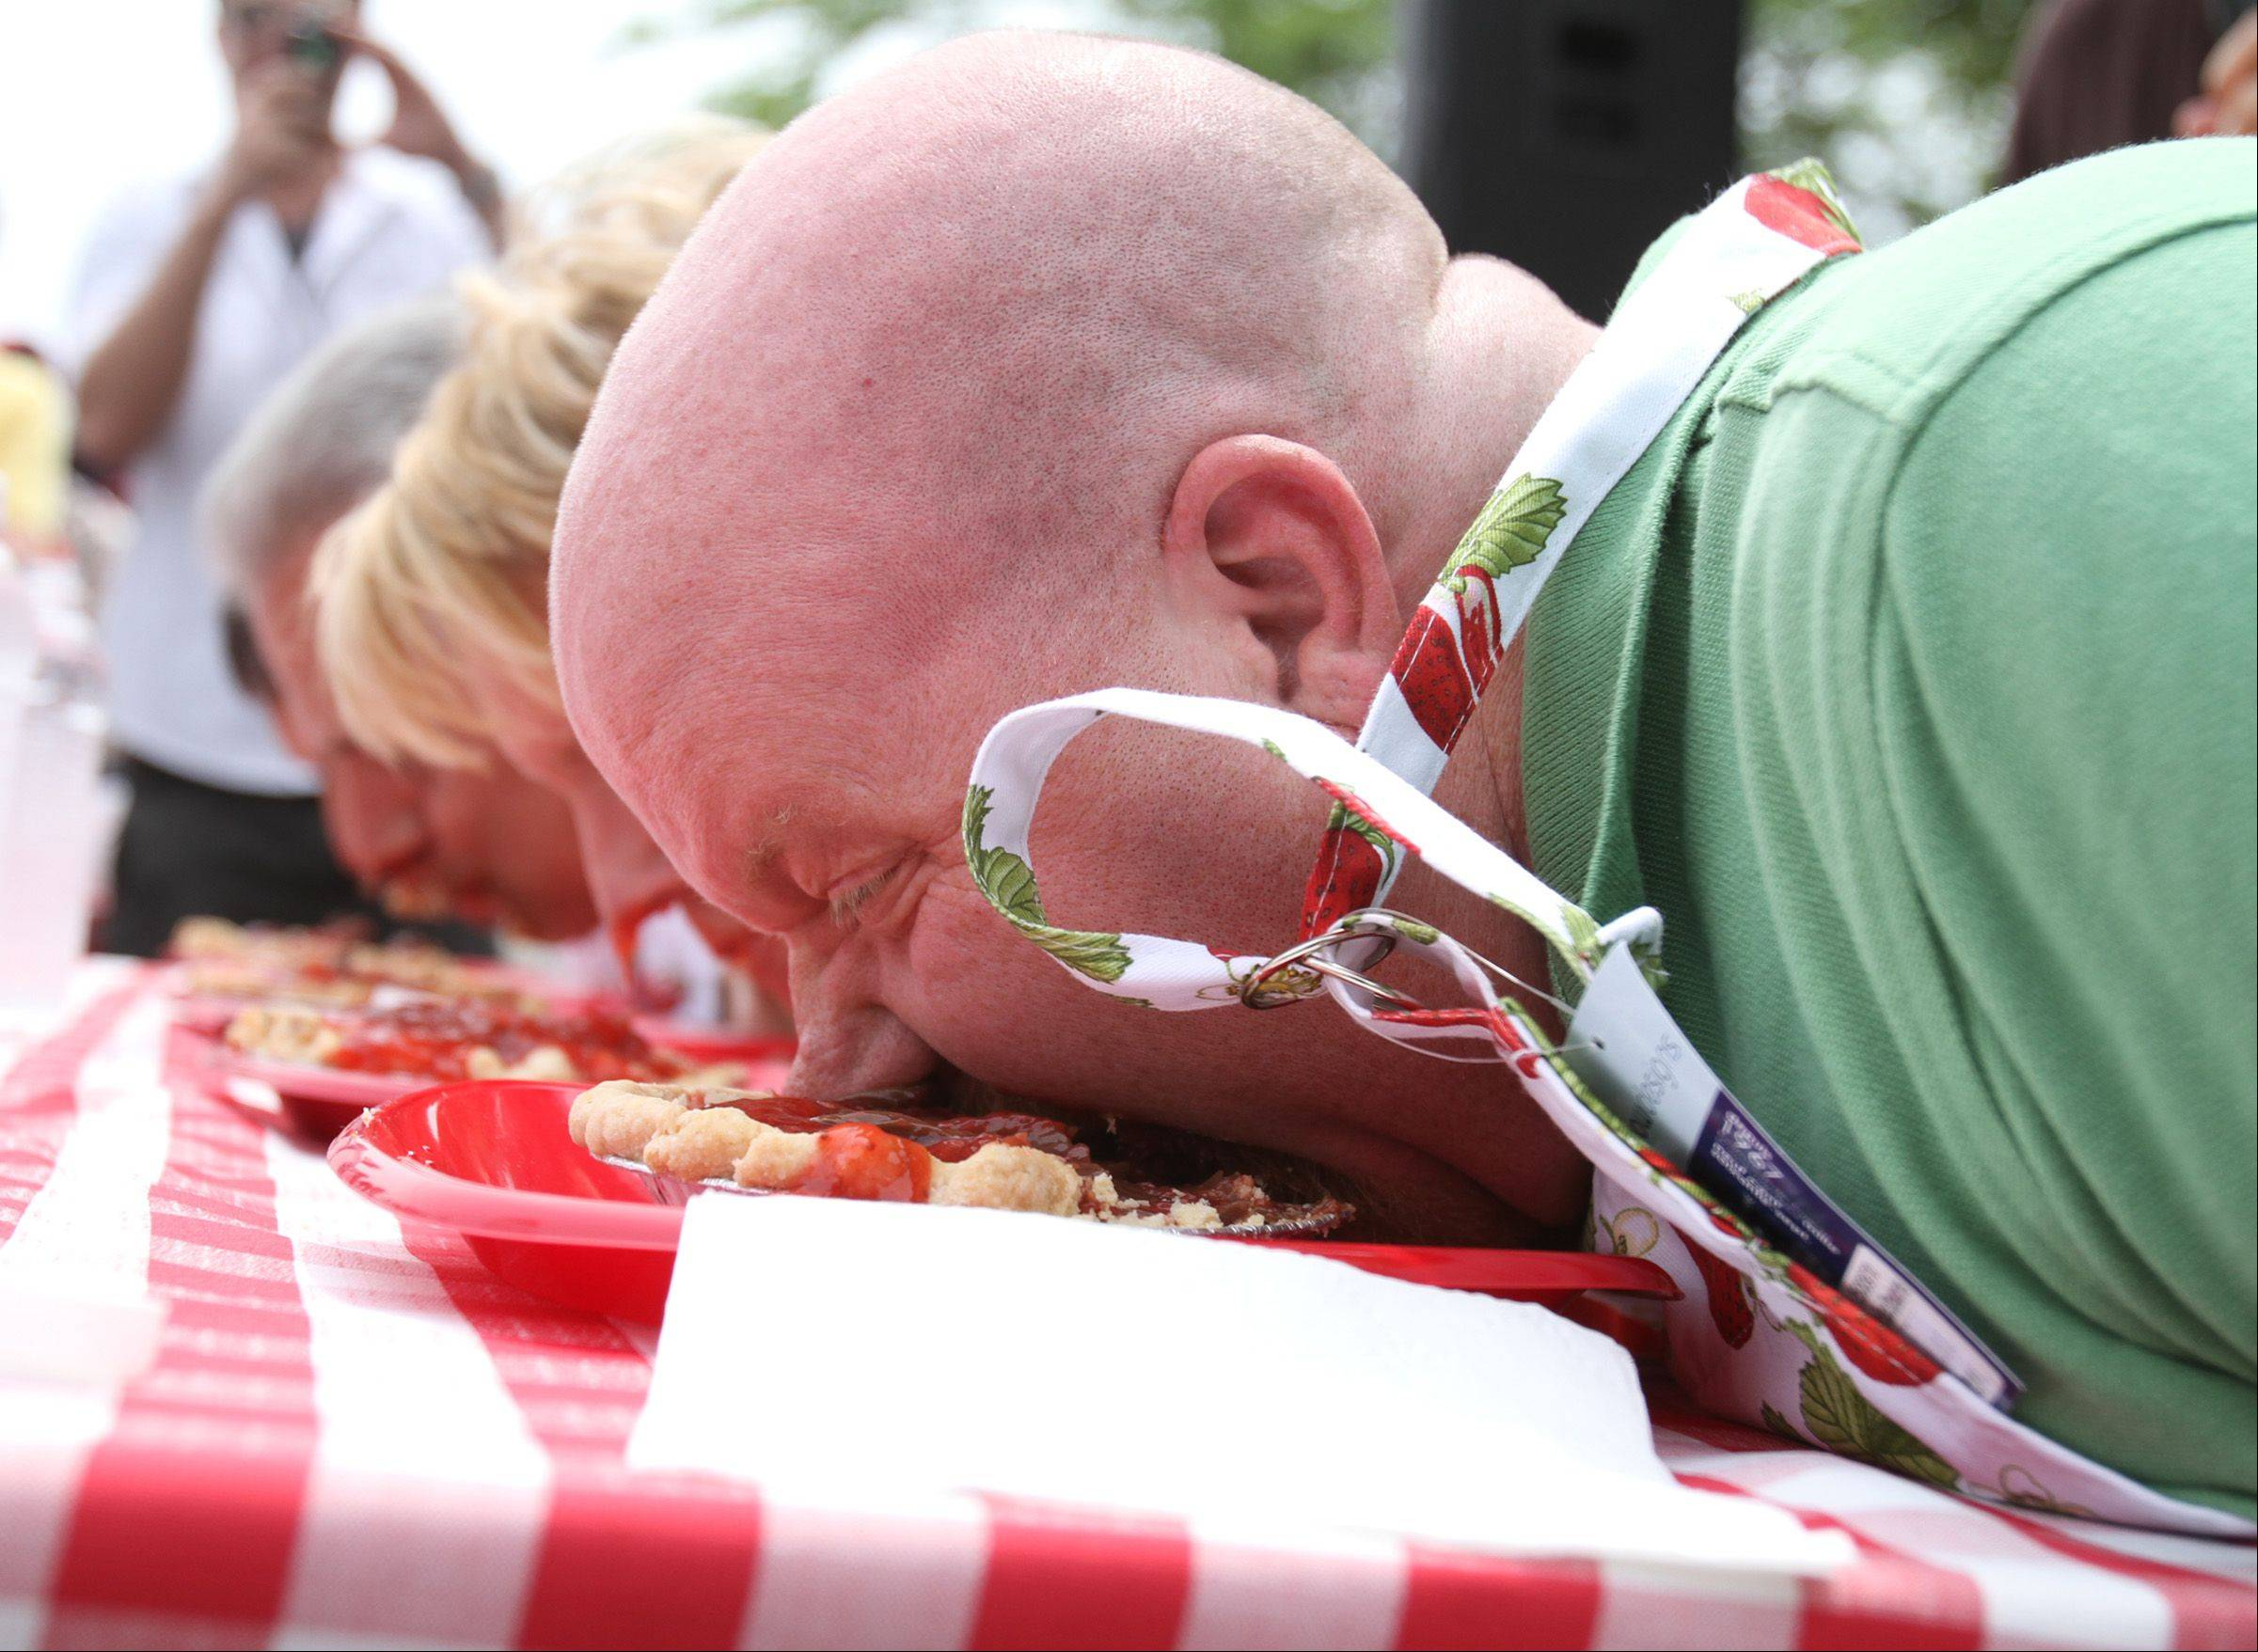 With their hands tied behind their backs, Daily Herald reporter Jake Griffin, foreground to background, Maria Rodriguez, Long Grove Village president, Ron Bernardi representing Sunset Foods, and John Garcia, ABC 7 anchor, compete in the celebrity division of Long Grove's pie-eating contest Saturday. Strawberry Fest continues 10 a.m. to 6 p.m. Sunday.